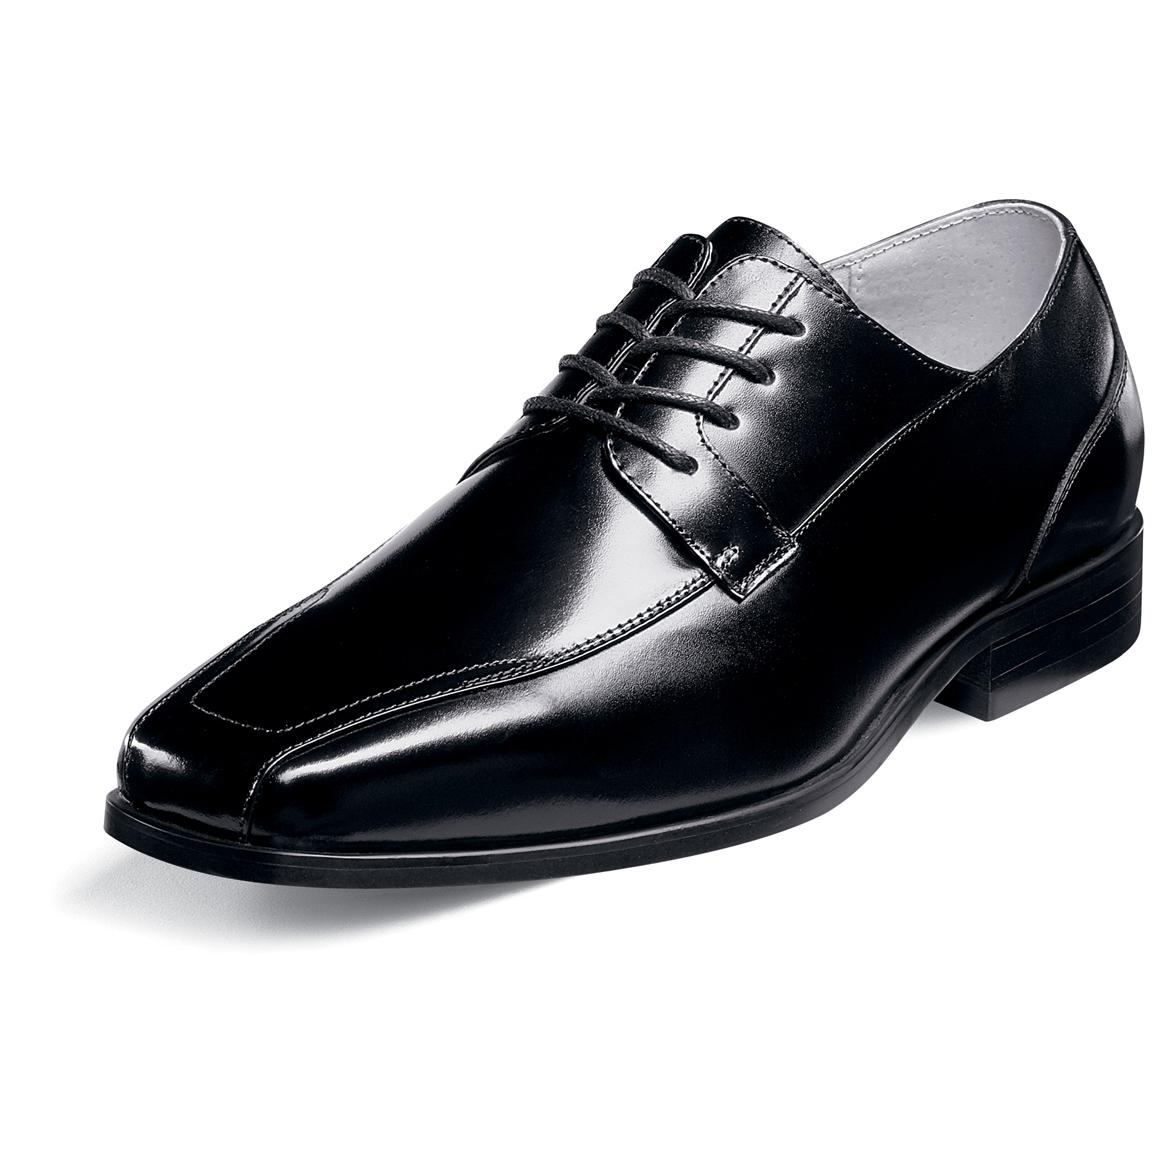 Men's Stacy Adams® Hobart Oxford Dress Shoes, Black